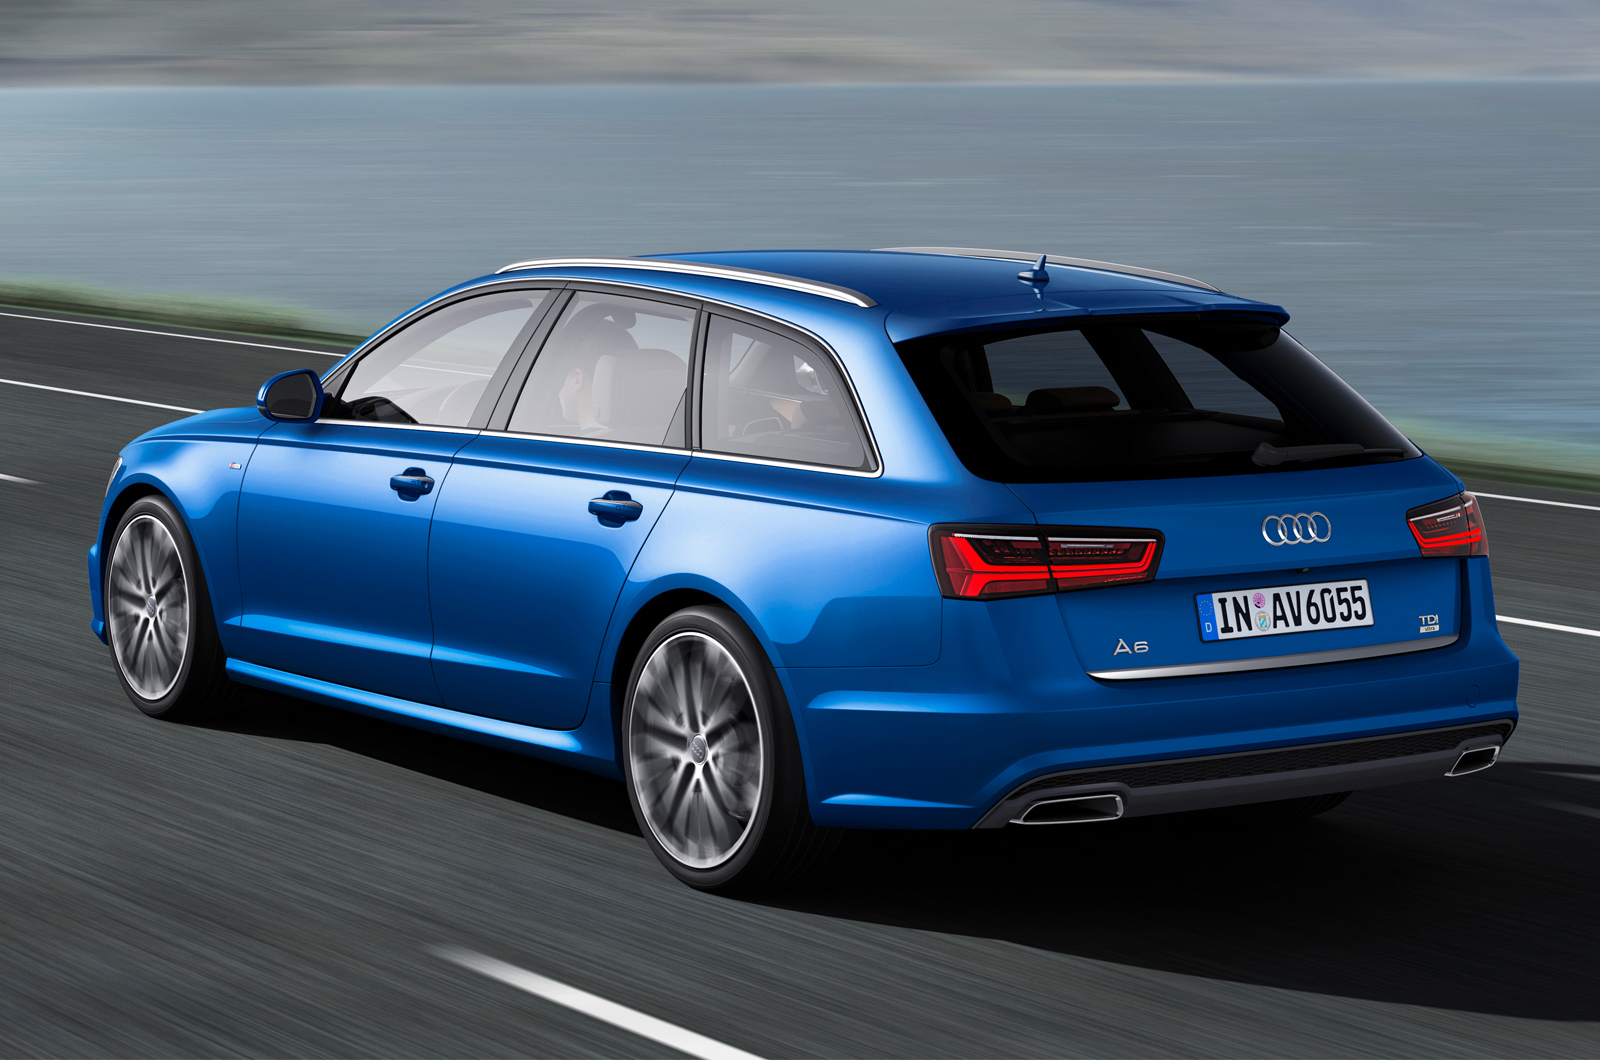 Audi a6 saloon (2011-2018) owner reviews: mpg, problems.